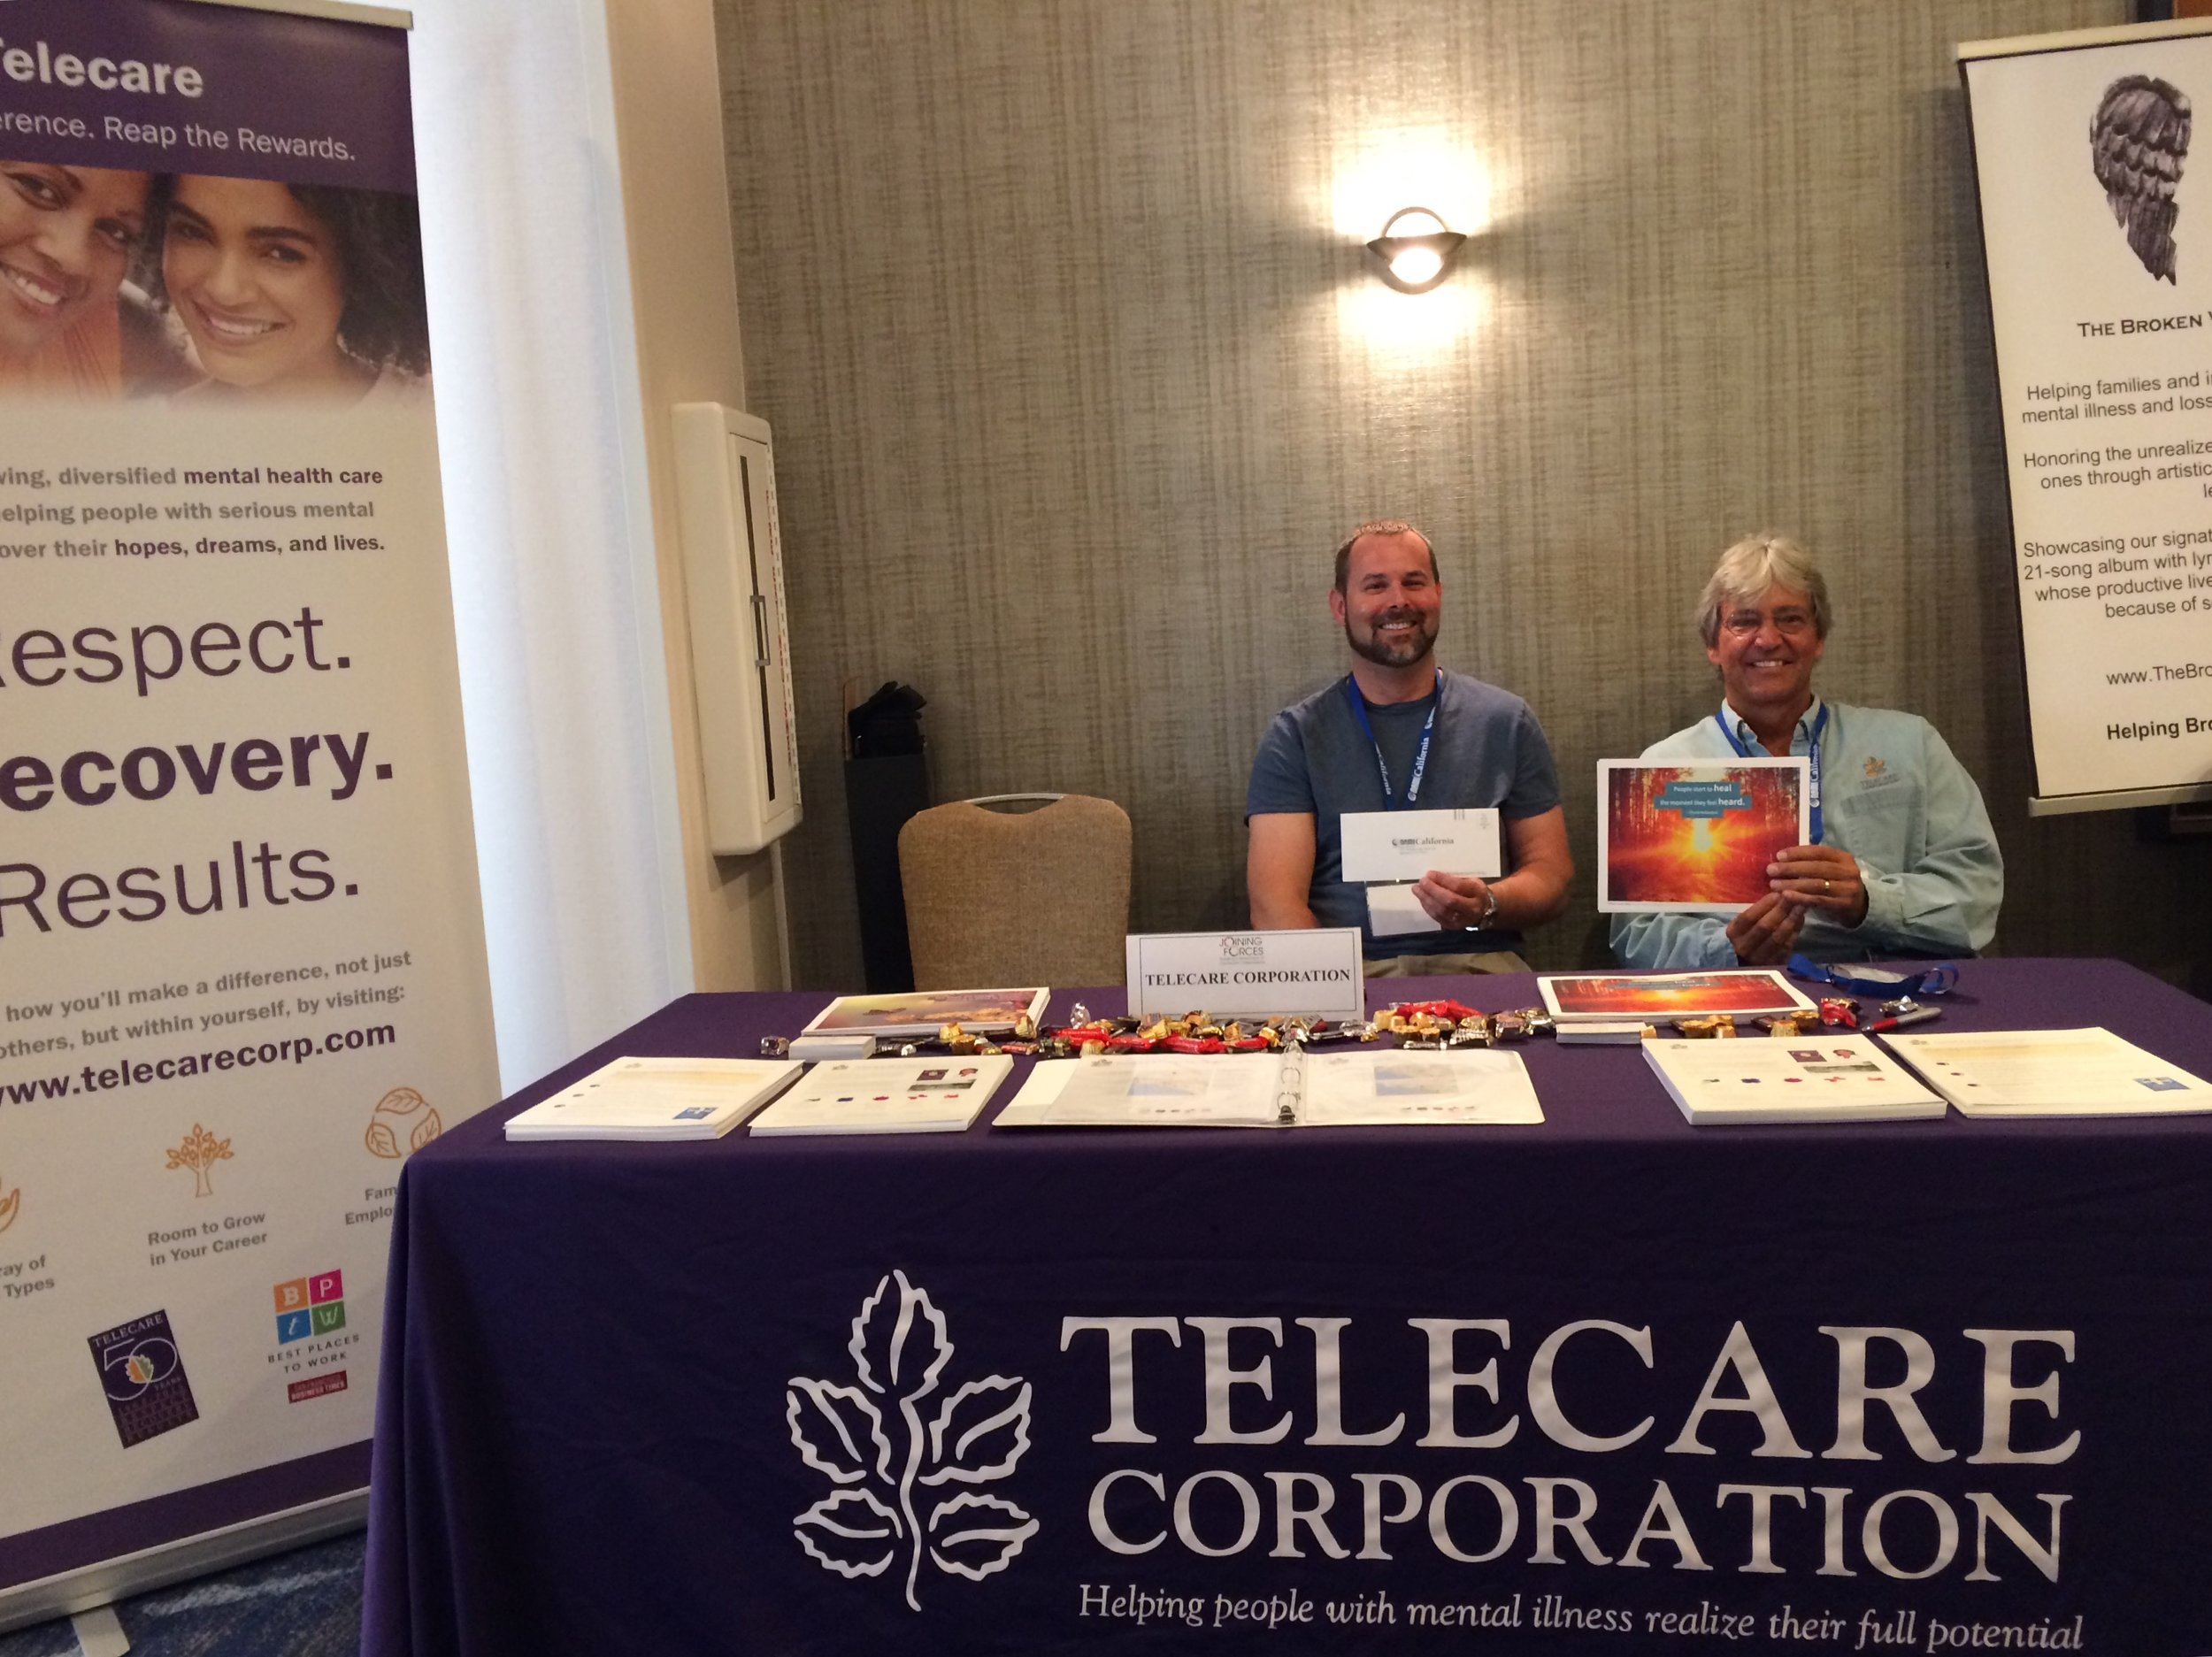 NAMI California Conference - Pete Hilen,TREEhouse Administrator, and Ed Bienkowski, Regional Director of Operations, having fun at the NAMI California Annual Conference on August 25 & 26 in Newport Beach, CA.